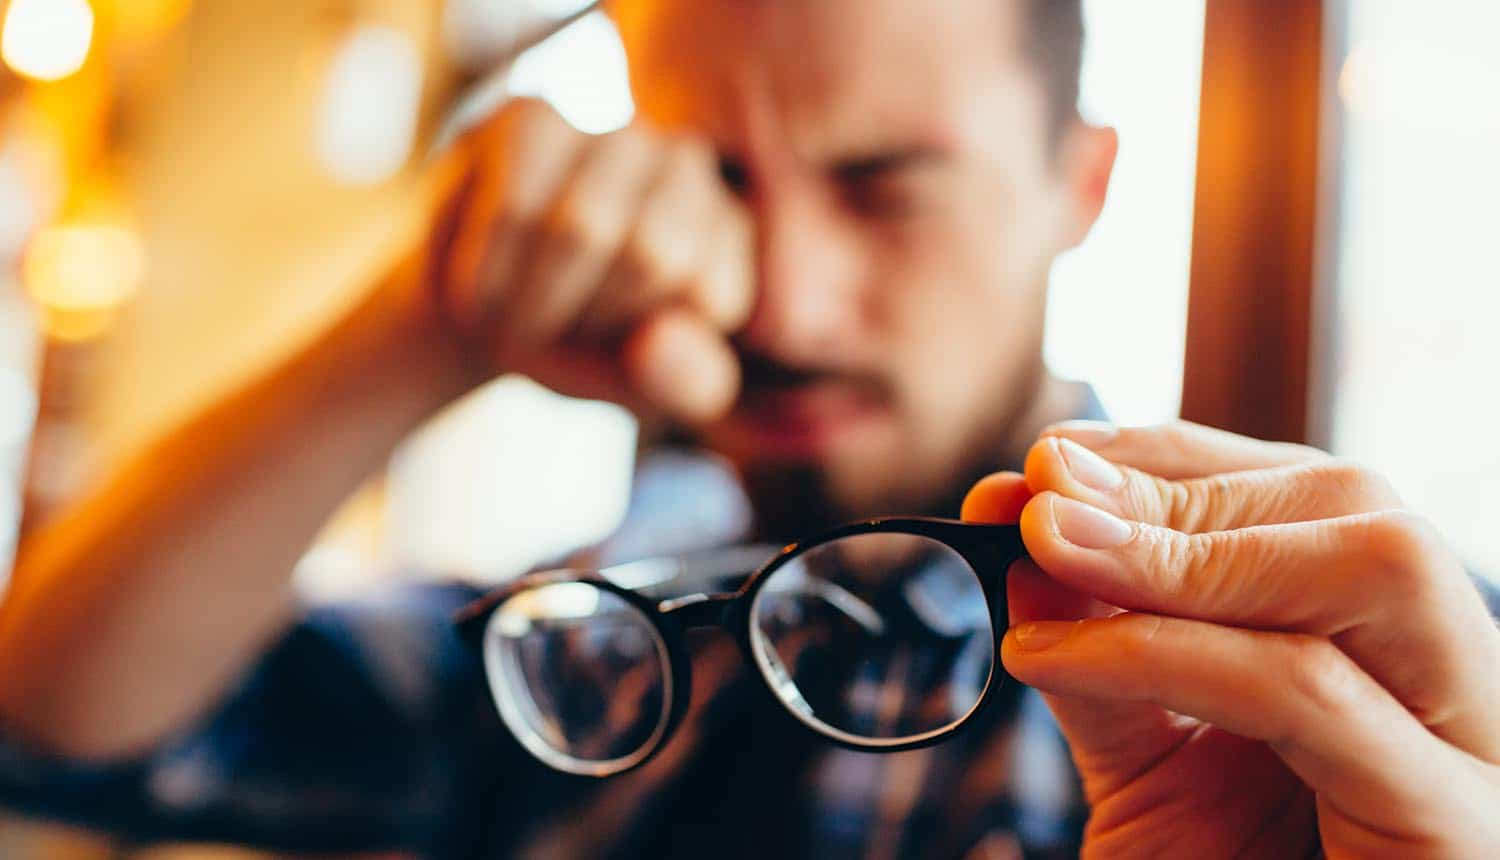 Man holding eyeglasses on one hand and rubbing his eyes with another showing how Americans are concerned and confused over personal data collection and data privacy